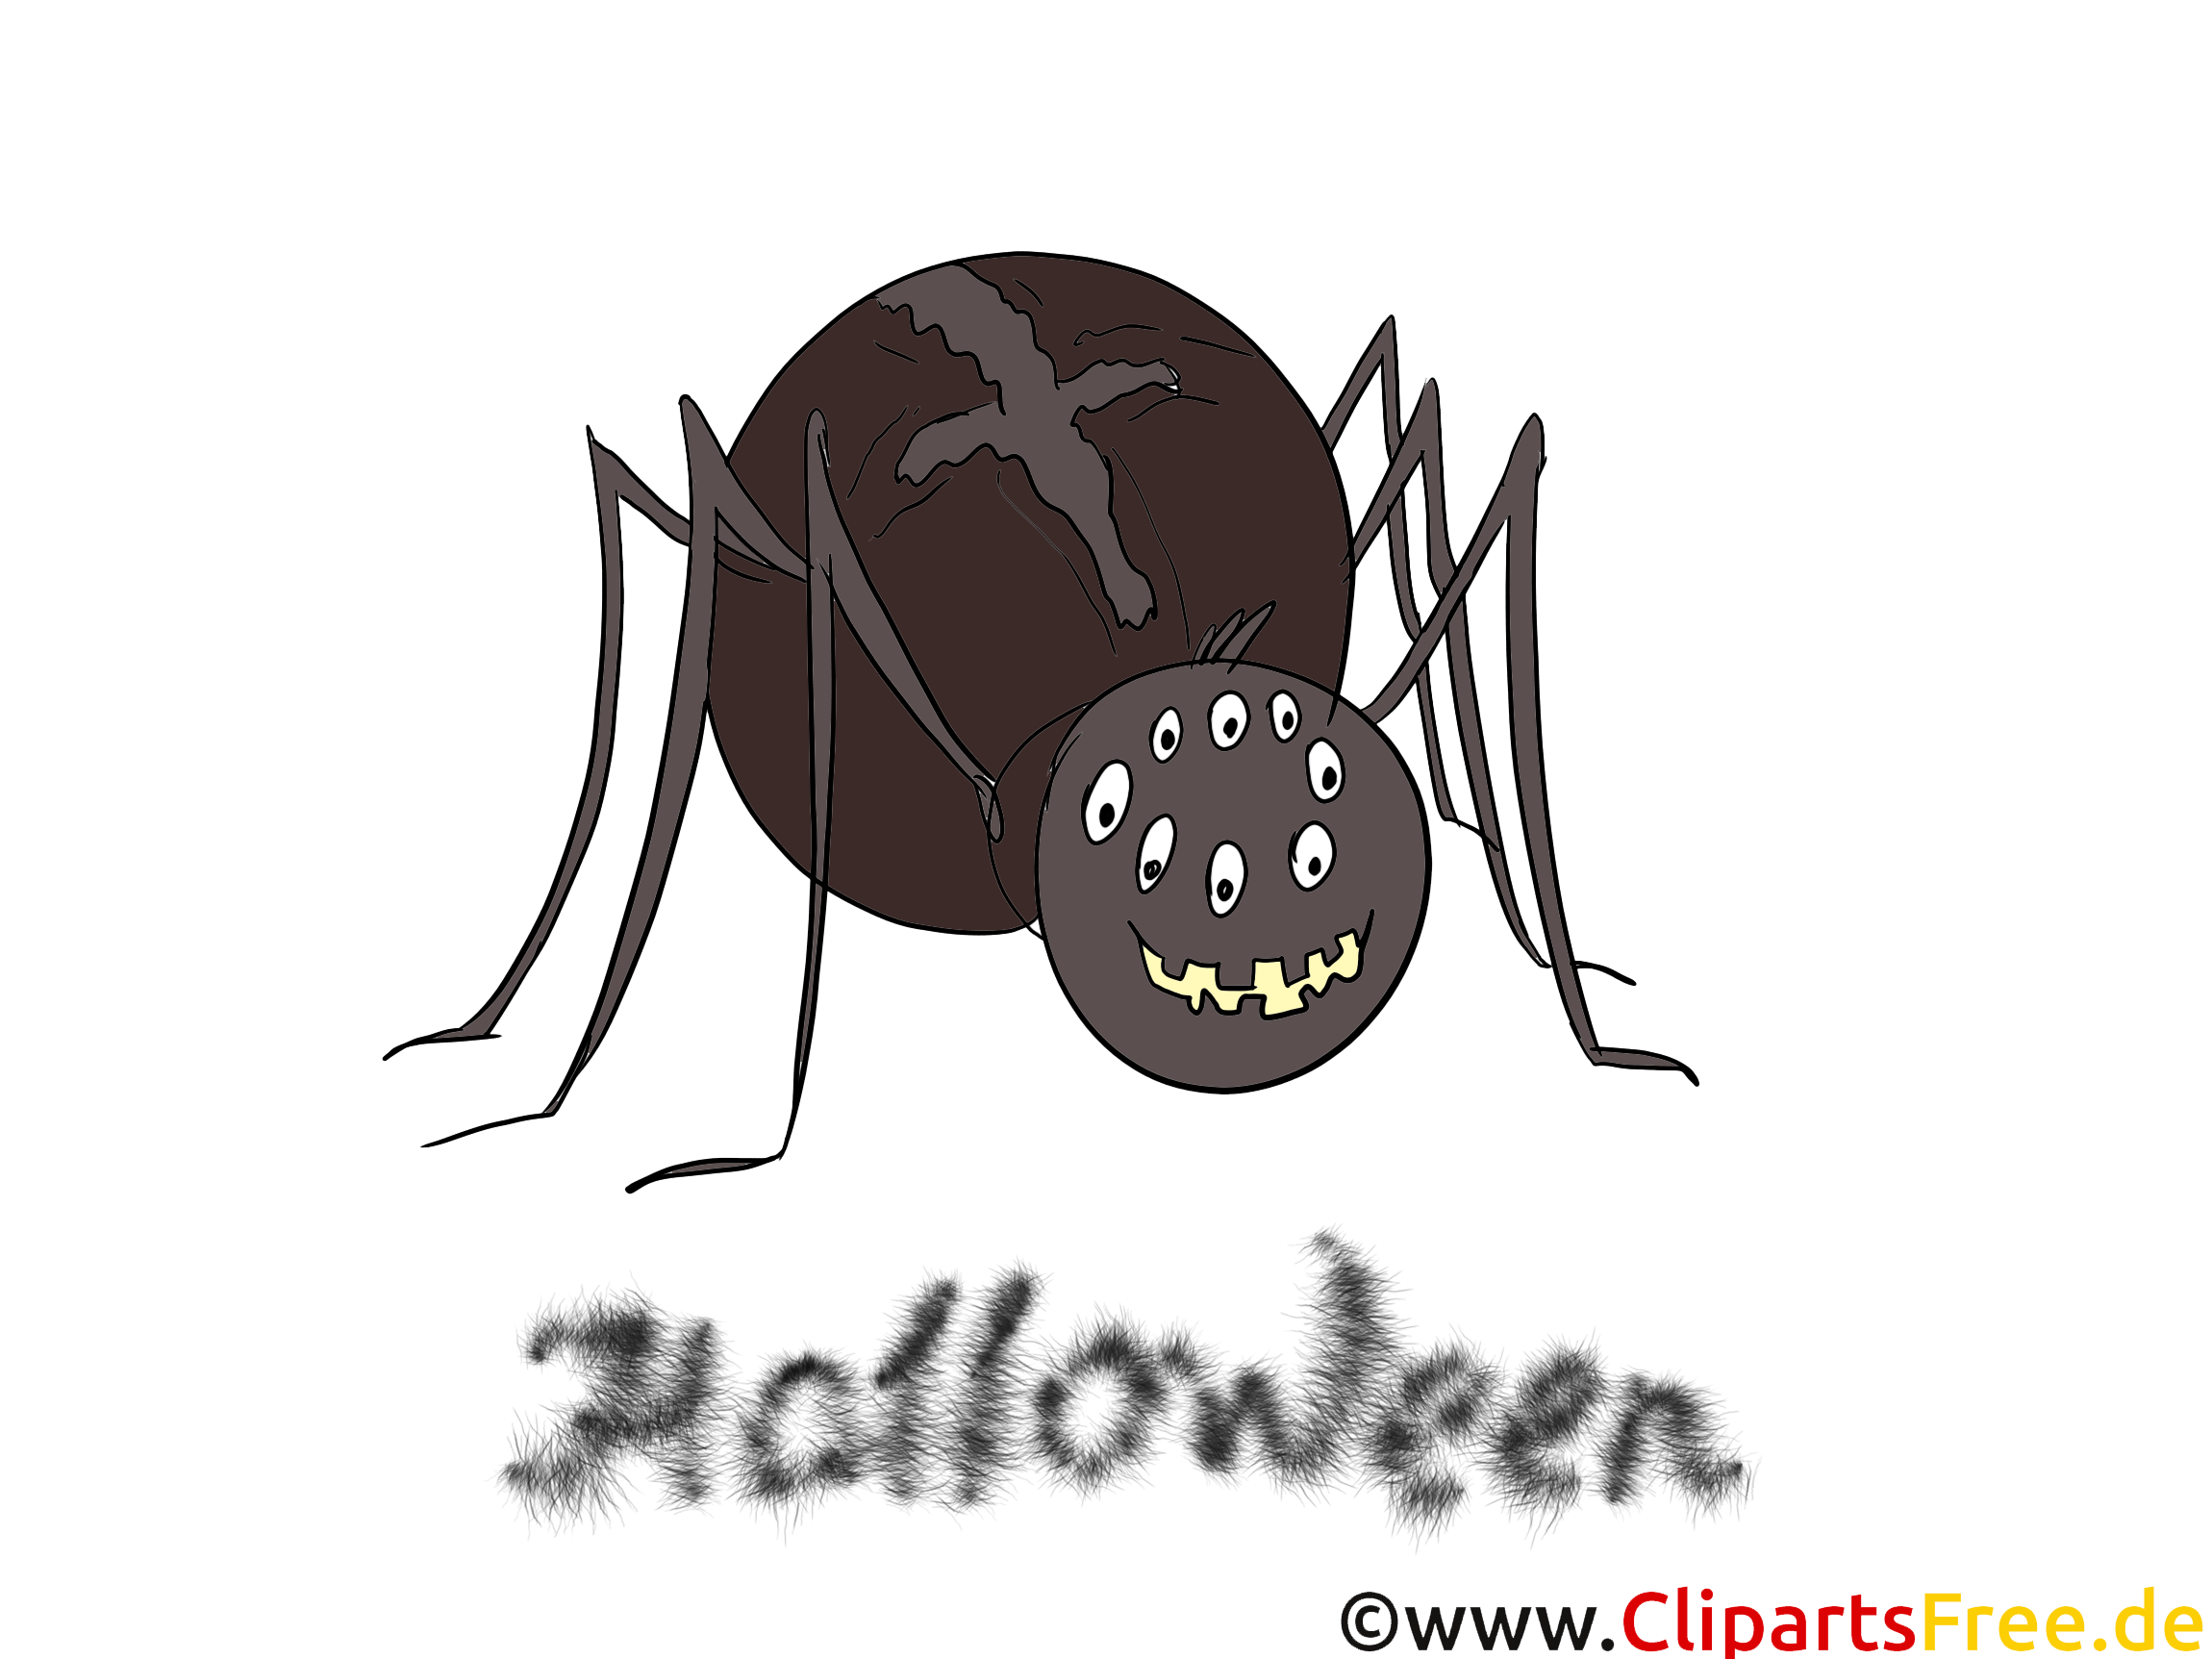 Clipart Spider - illustraties, afbeeldingen, clipart, strips, tekenfilms voor Halloween